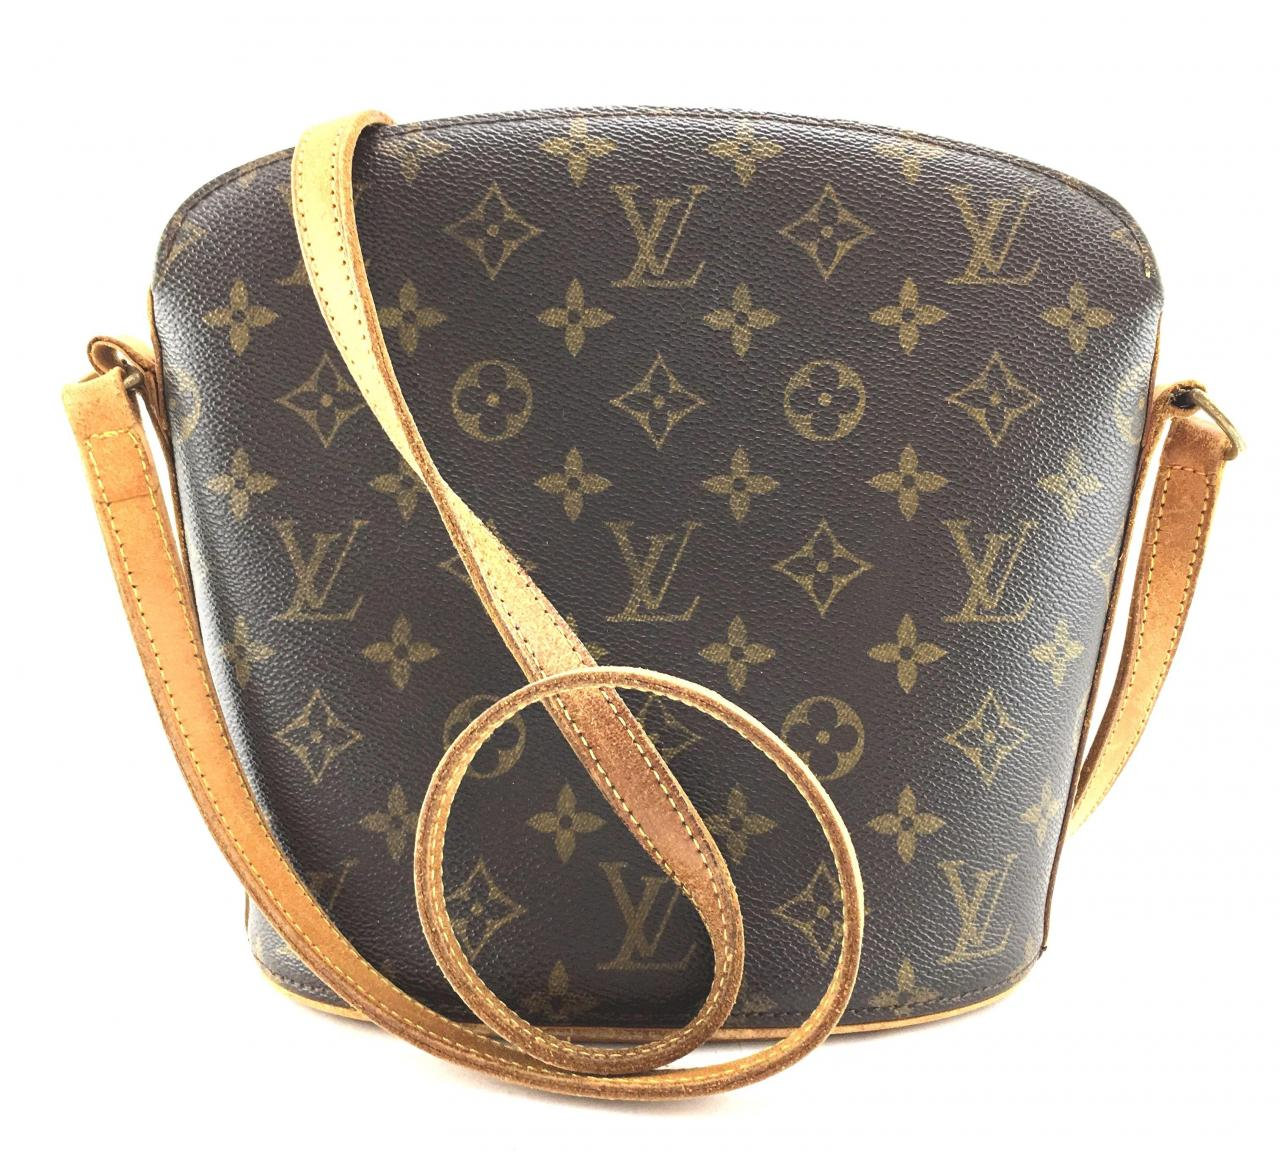 ac64d1f204af Grade 1 Replica Handbag Louis Vuitton Drouot  19133 Long Strap Shoulder  Monogram Canvas and Vachetta Leather Cross Body Bag